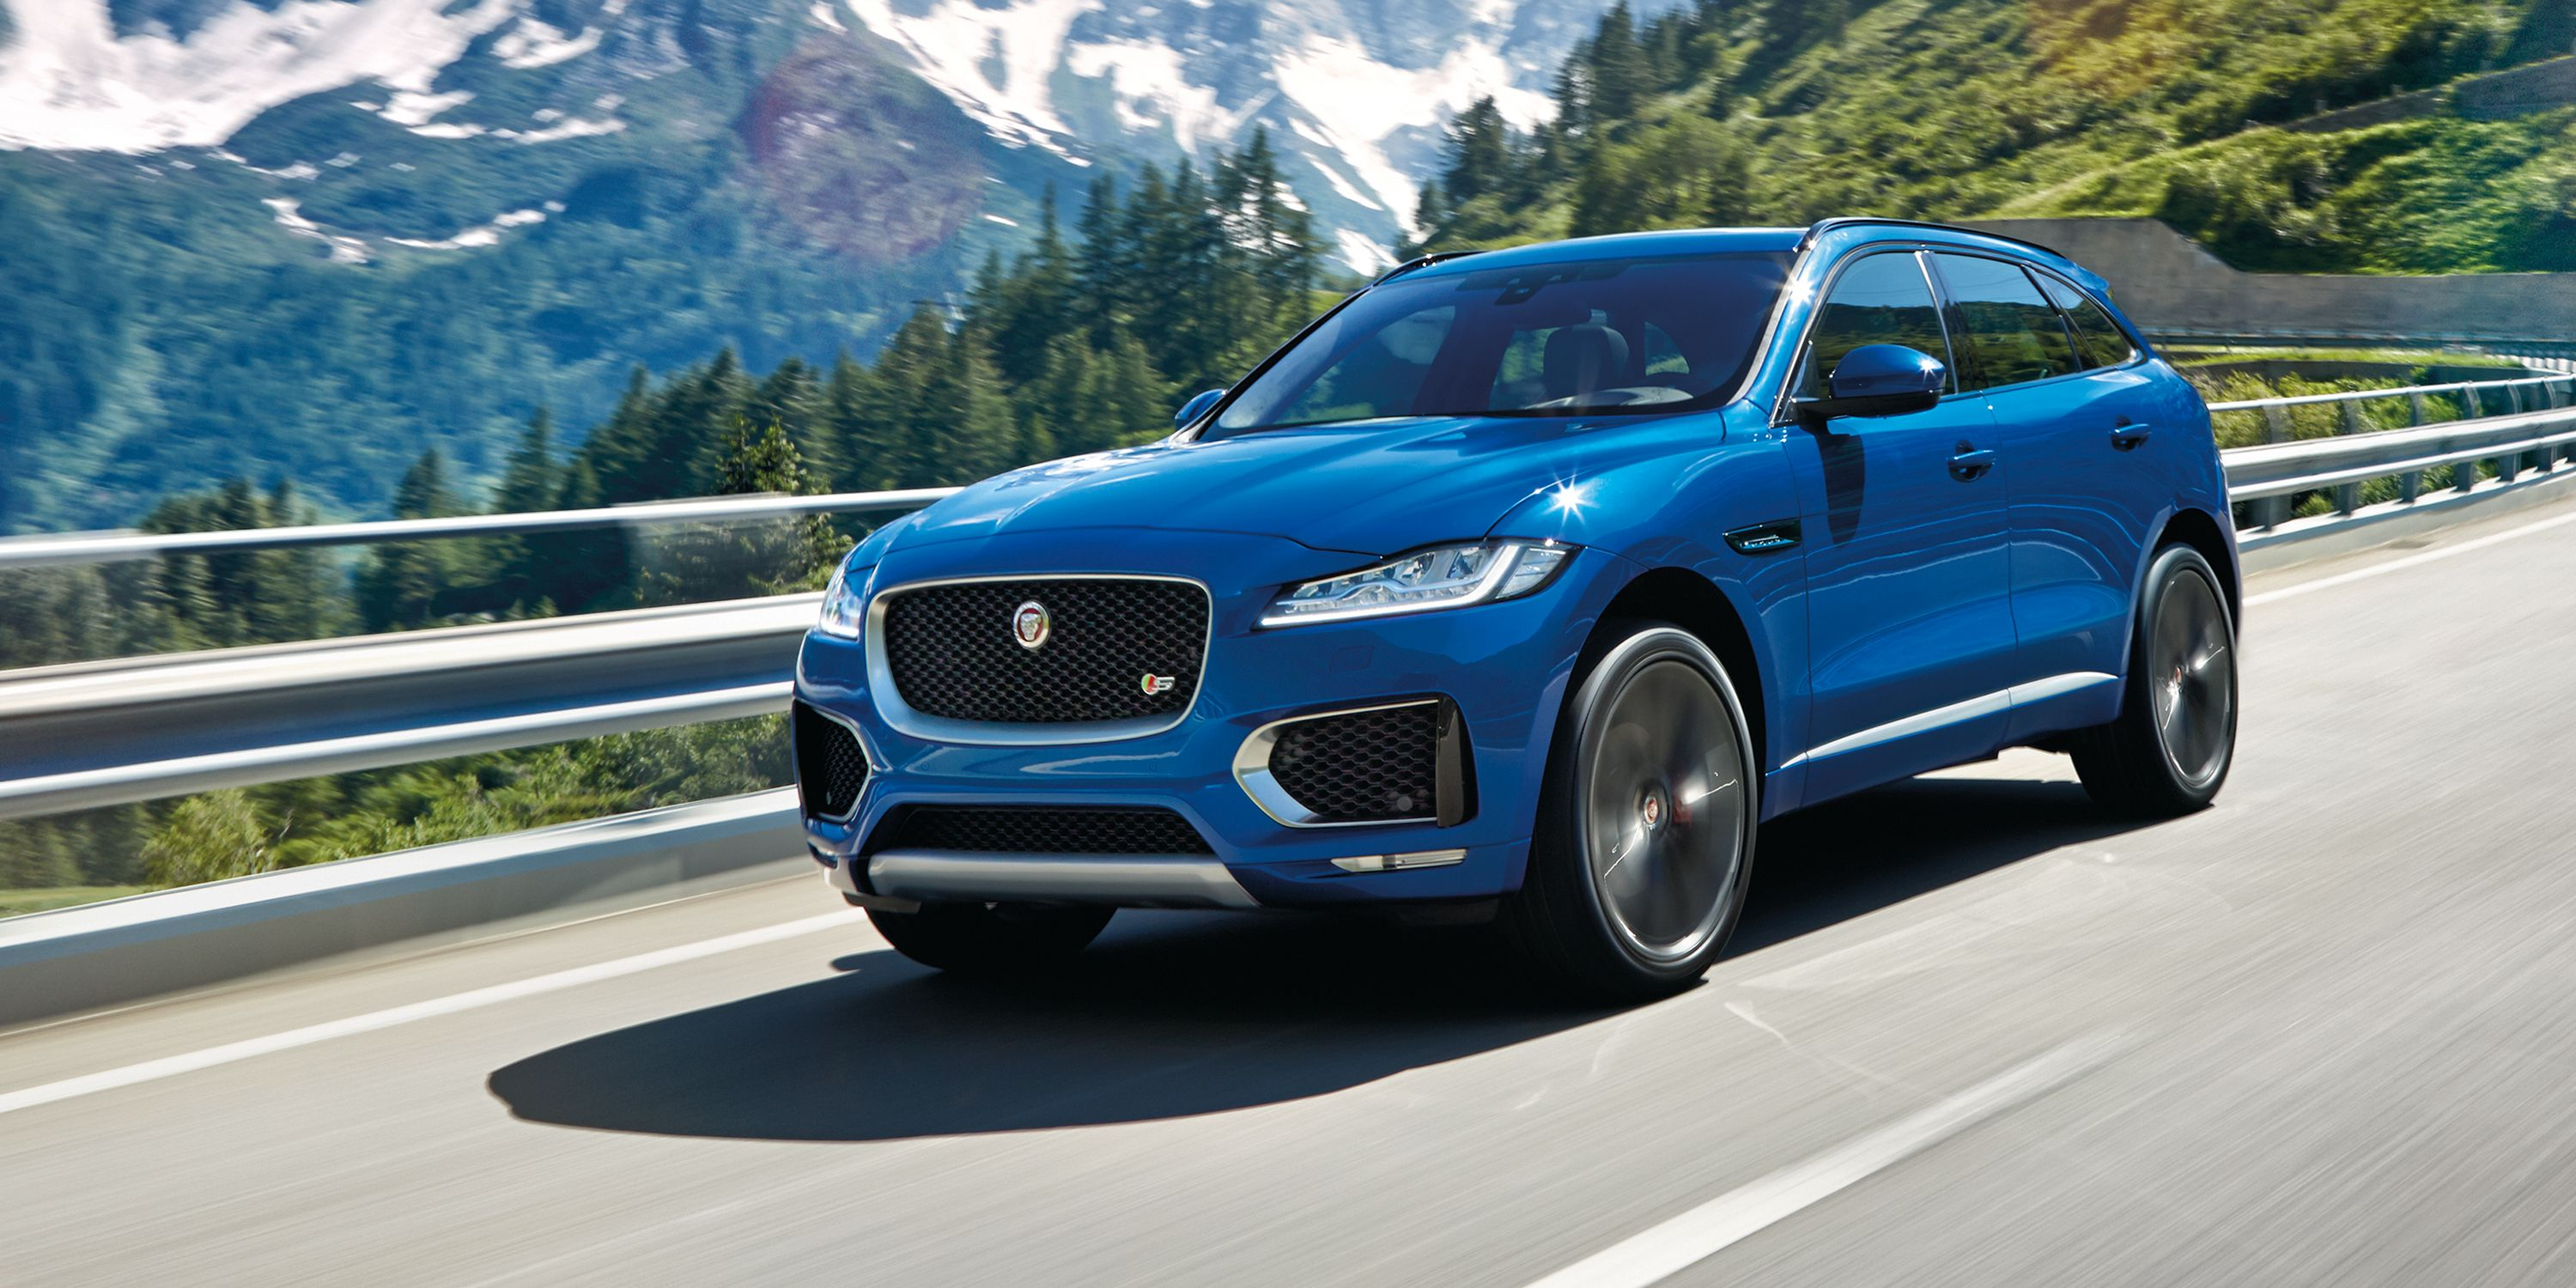 offers of for specials new car sedan chicago suv banner special jaguar naperville htm monthly sale near